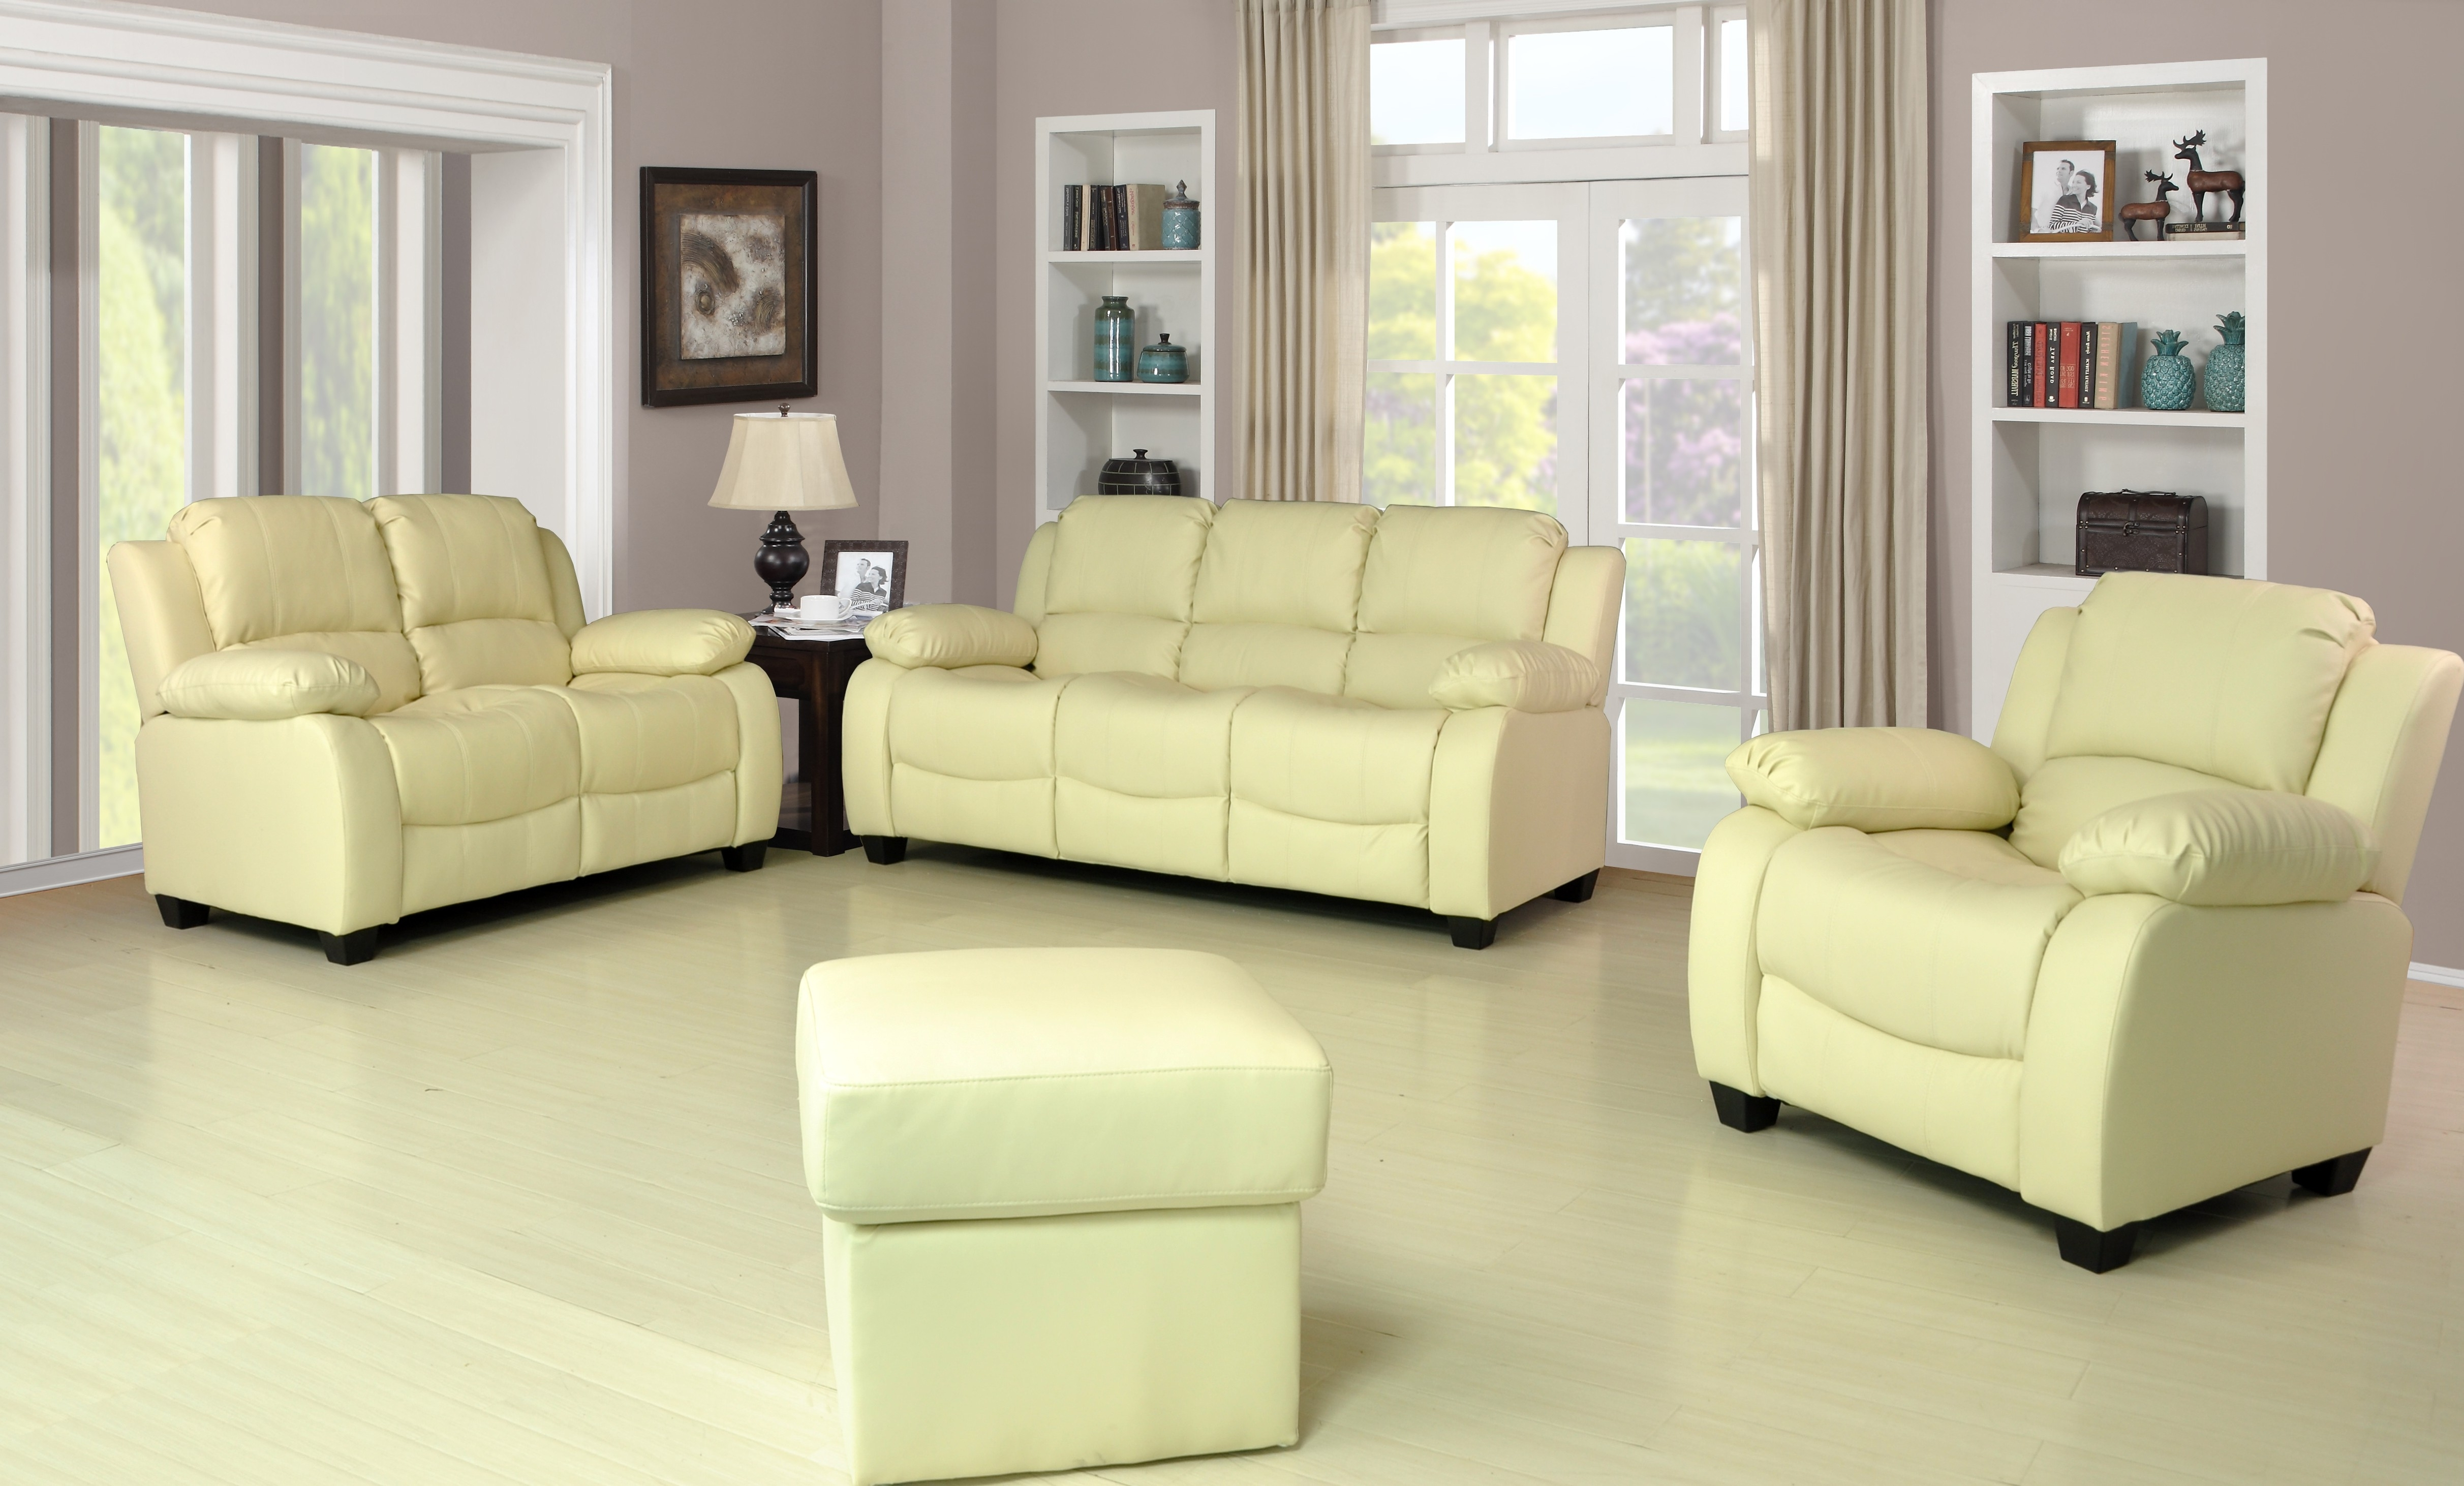 Best And Newest Cream Leather Sofa Set Great Aesthetic Brown Withed And Cushions Pertaining To Cream Colored Sofas (View 3 of 20)